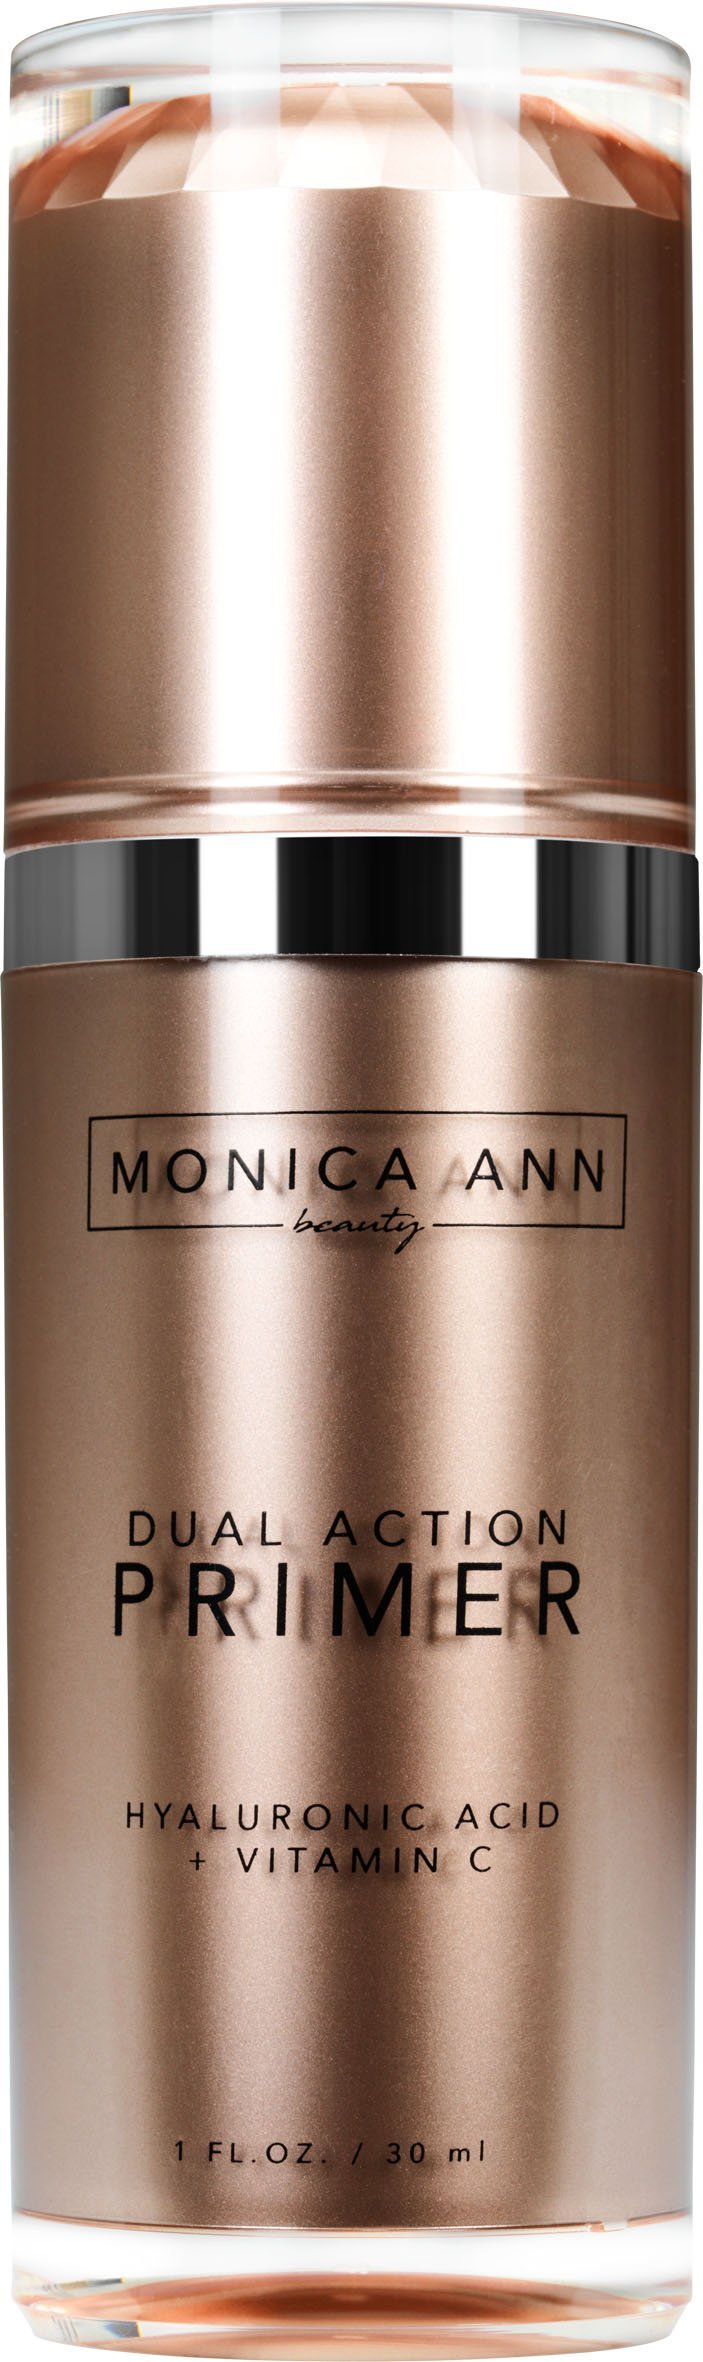 Dual-Action Face Primer (Vitamin C+ Hyaluronic Acid) , Monica Ann Beauty; Foundation Primer that will Hydrate, Mattify, Brighten, and Blur for a Healthy Natural Glow!